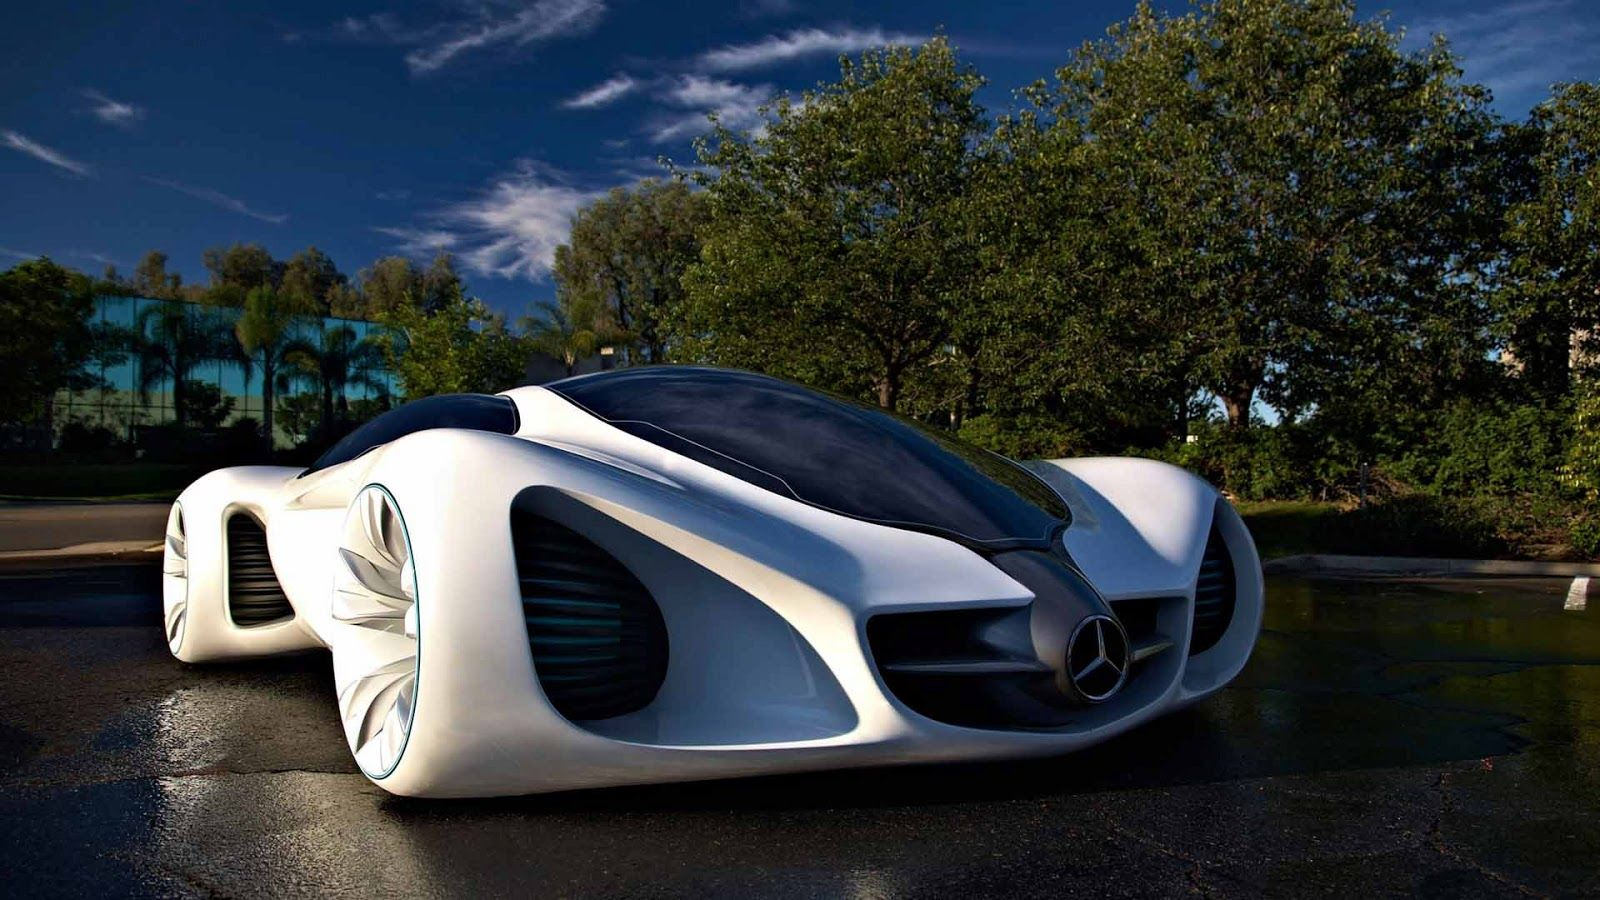 3d Hd Wallpapers 1080p Hd Photo Gallary Free Wallpaper Download Hd Wallpaper Mercedes Benz Biome Futuristic Cars Mercedes Concept